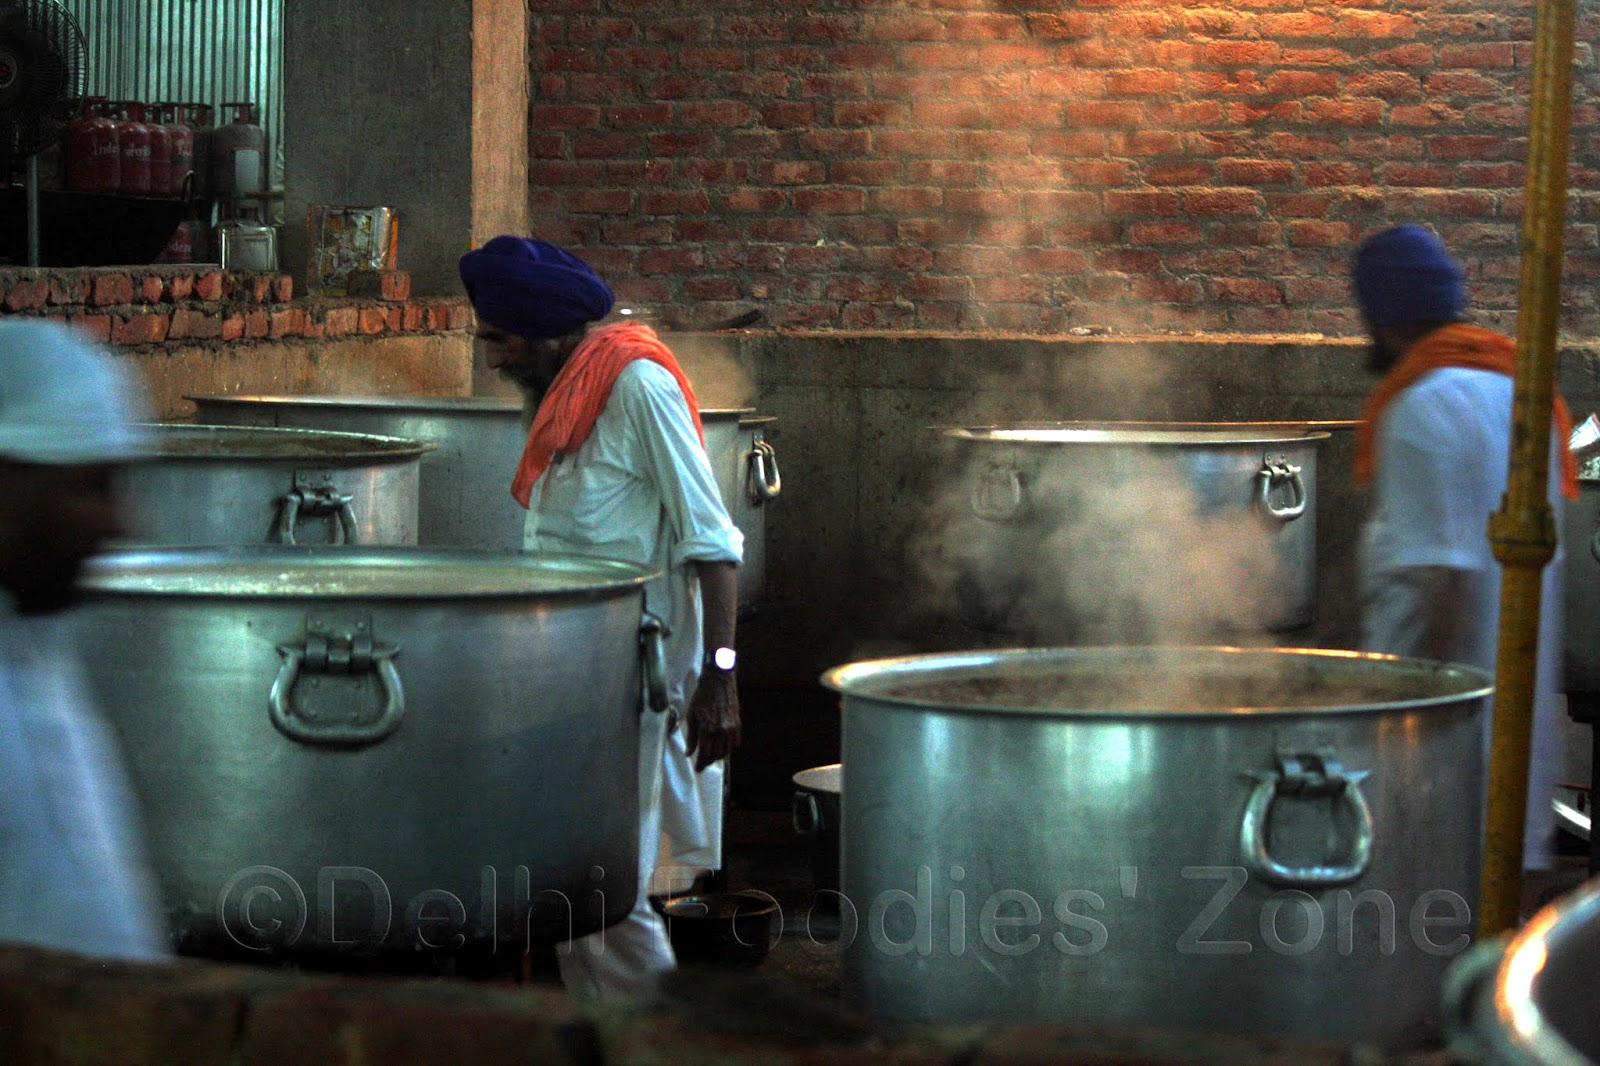 delhi foodies zone behind the scenes of golden temple langar langar golden temple